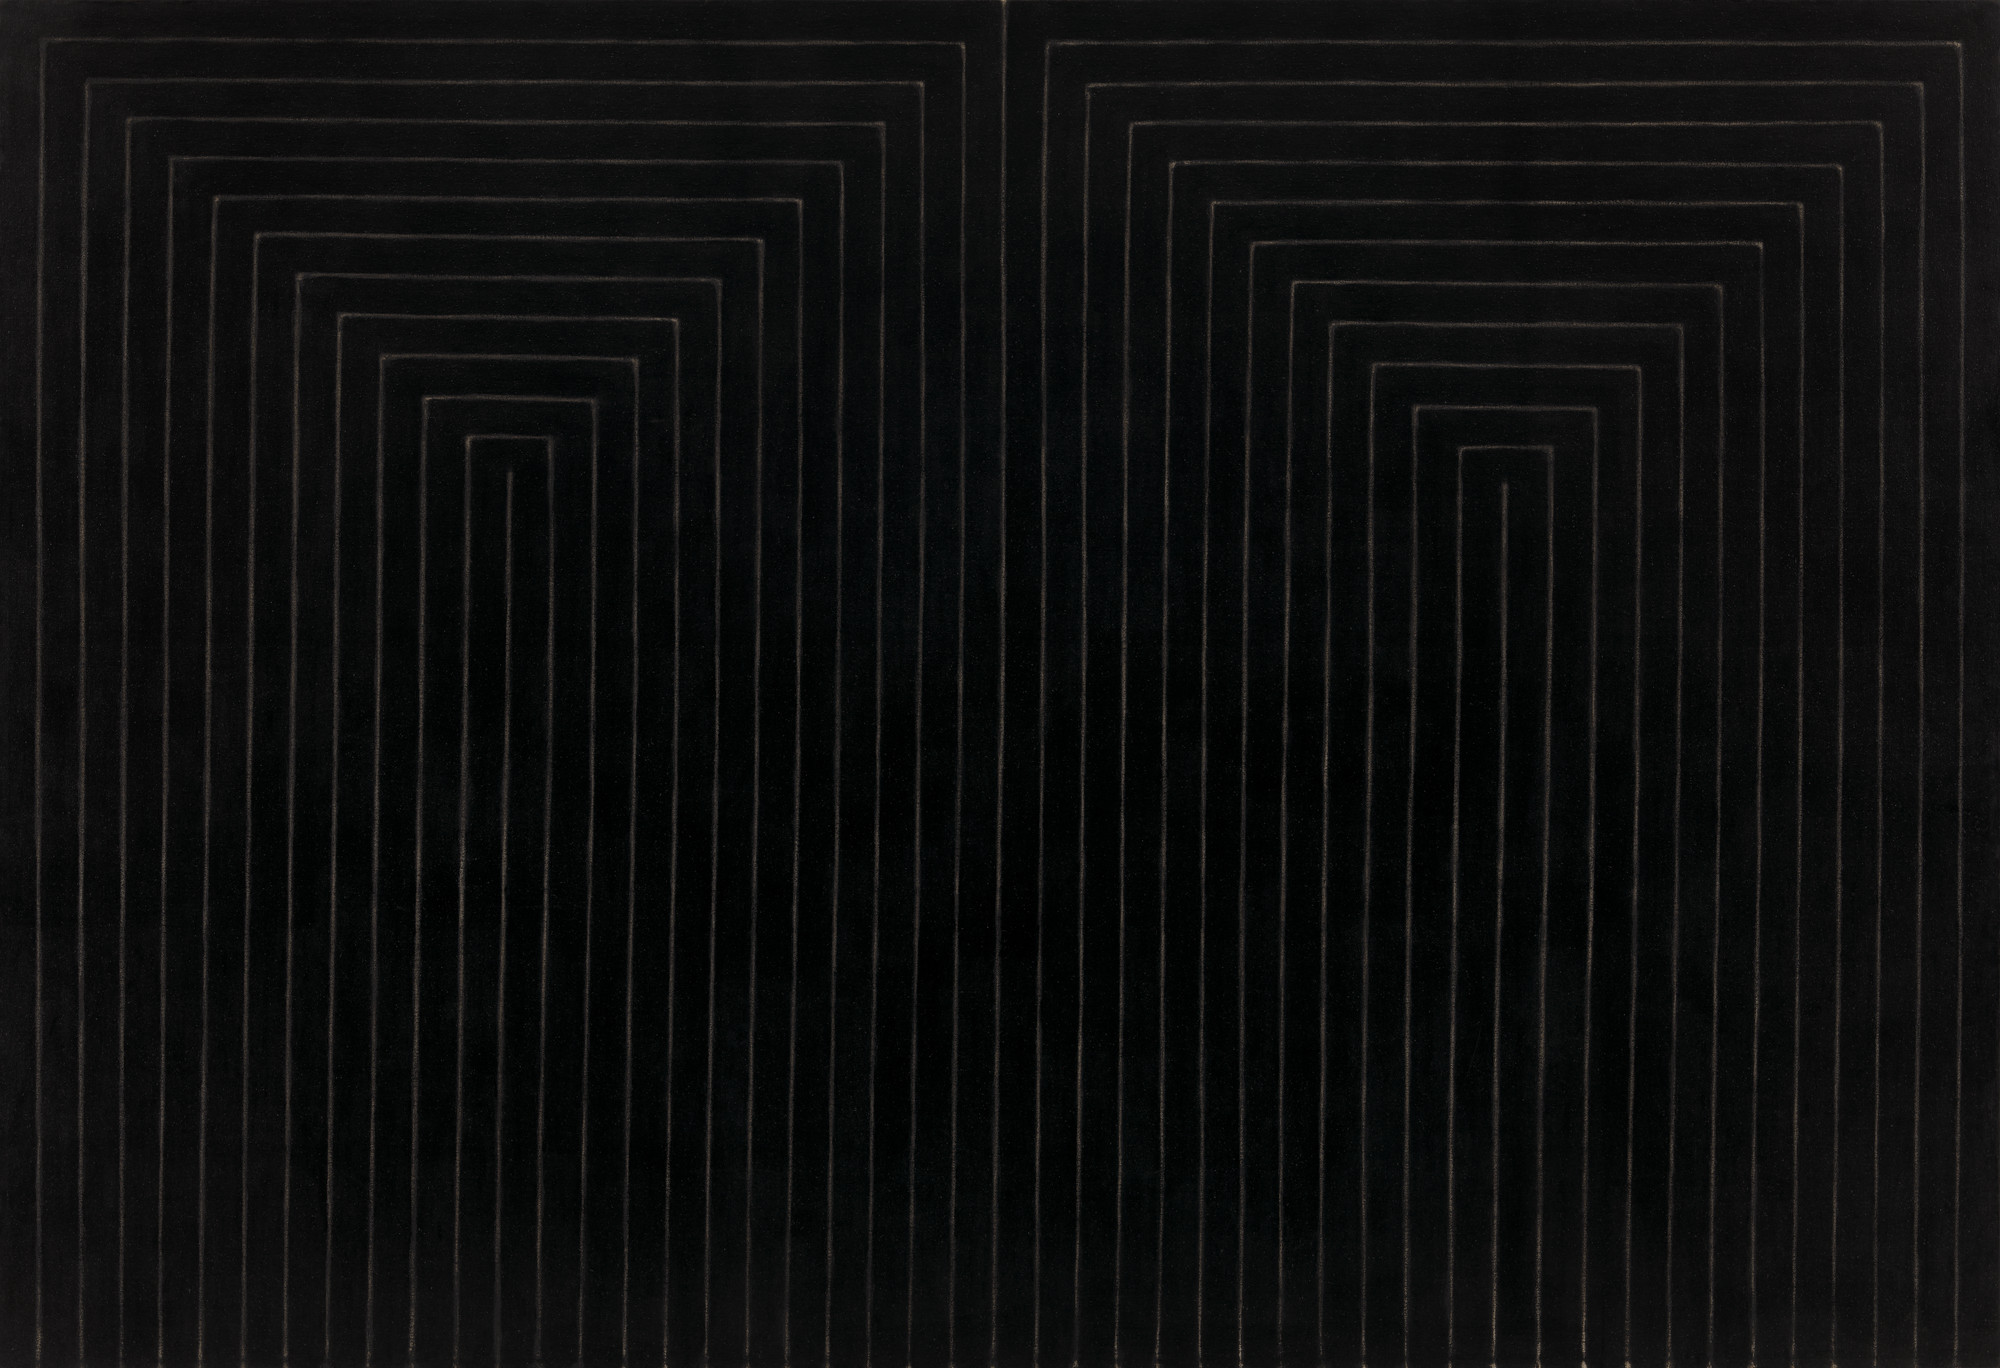 Frank Stella. The Marriage of Reason and Squalor, II. 1959